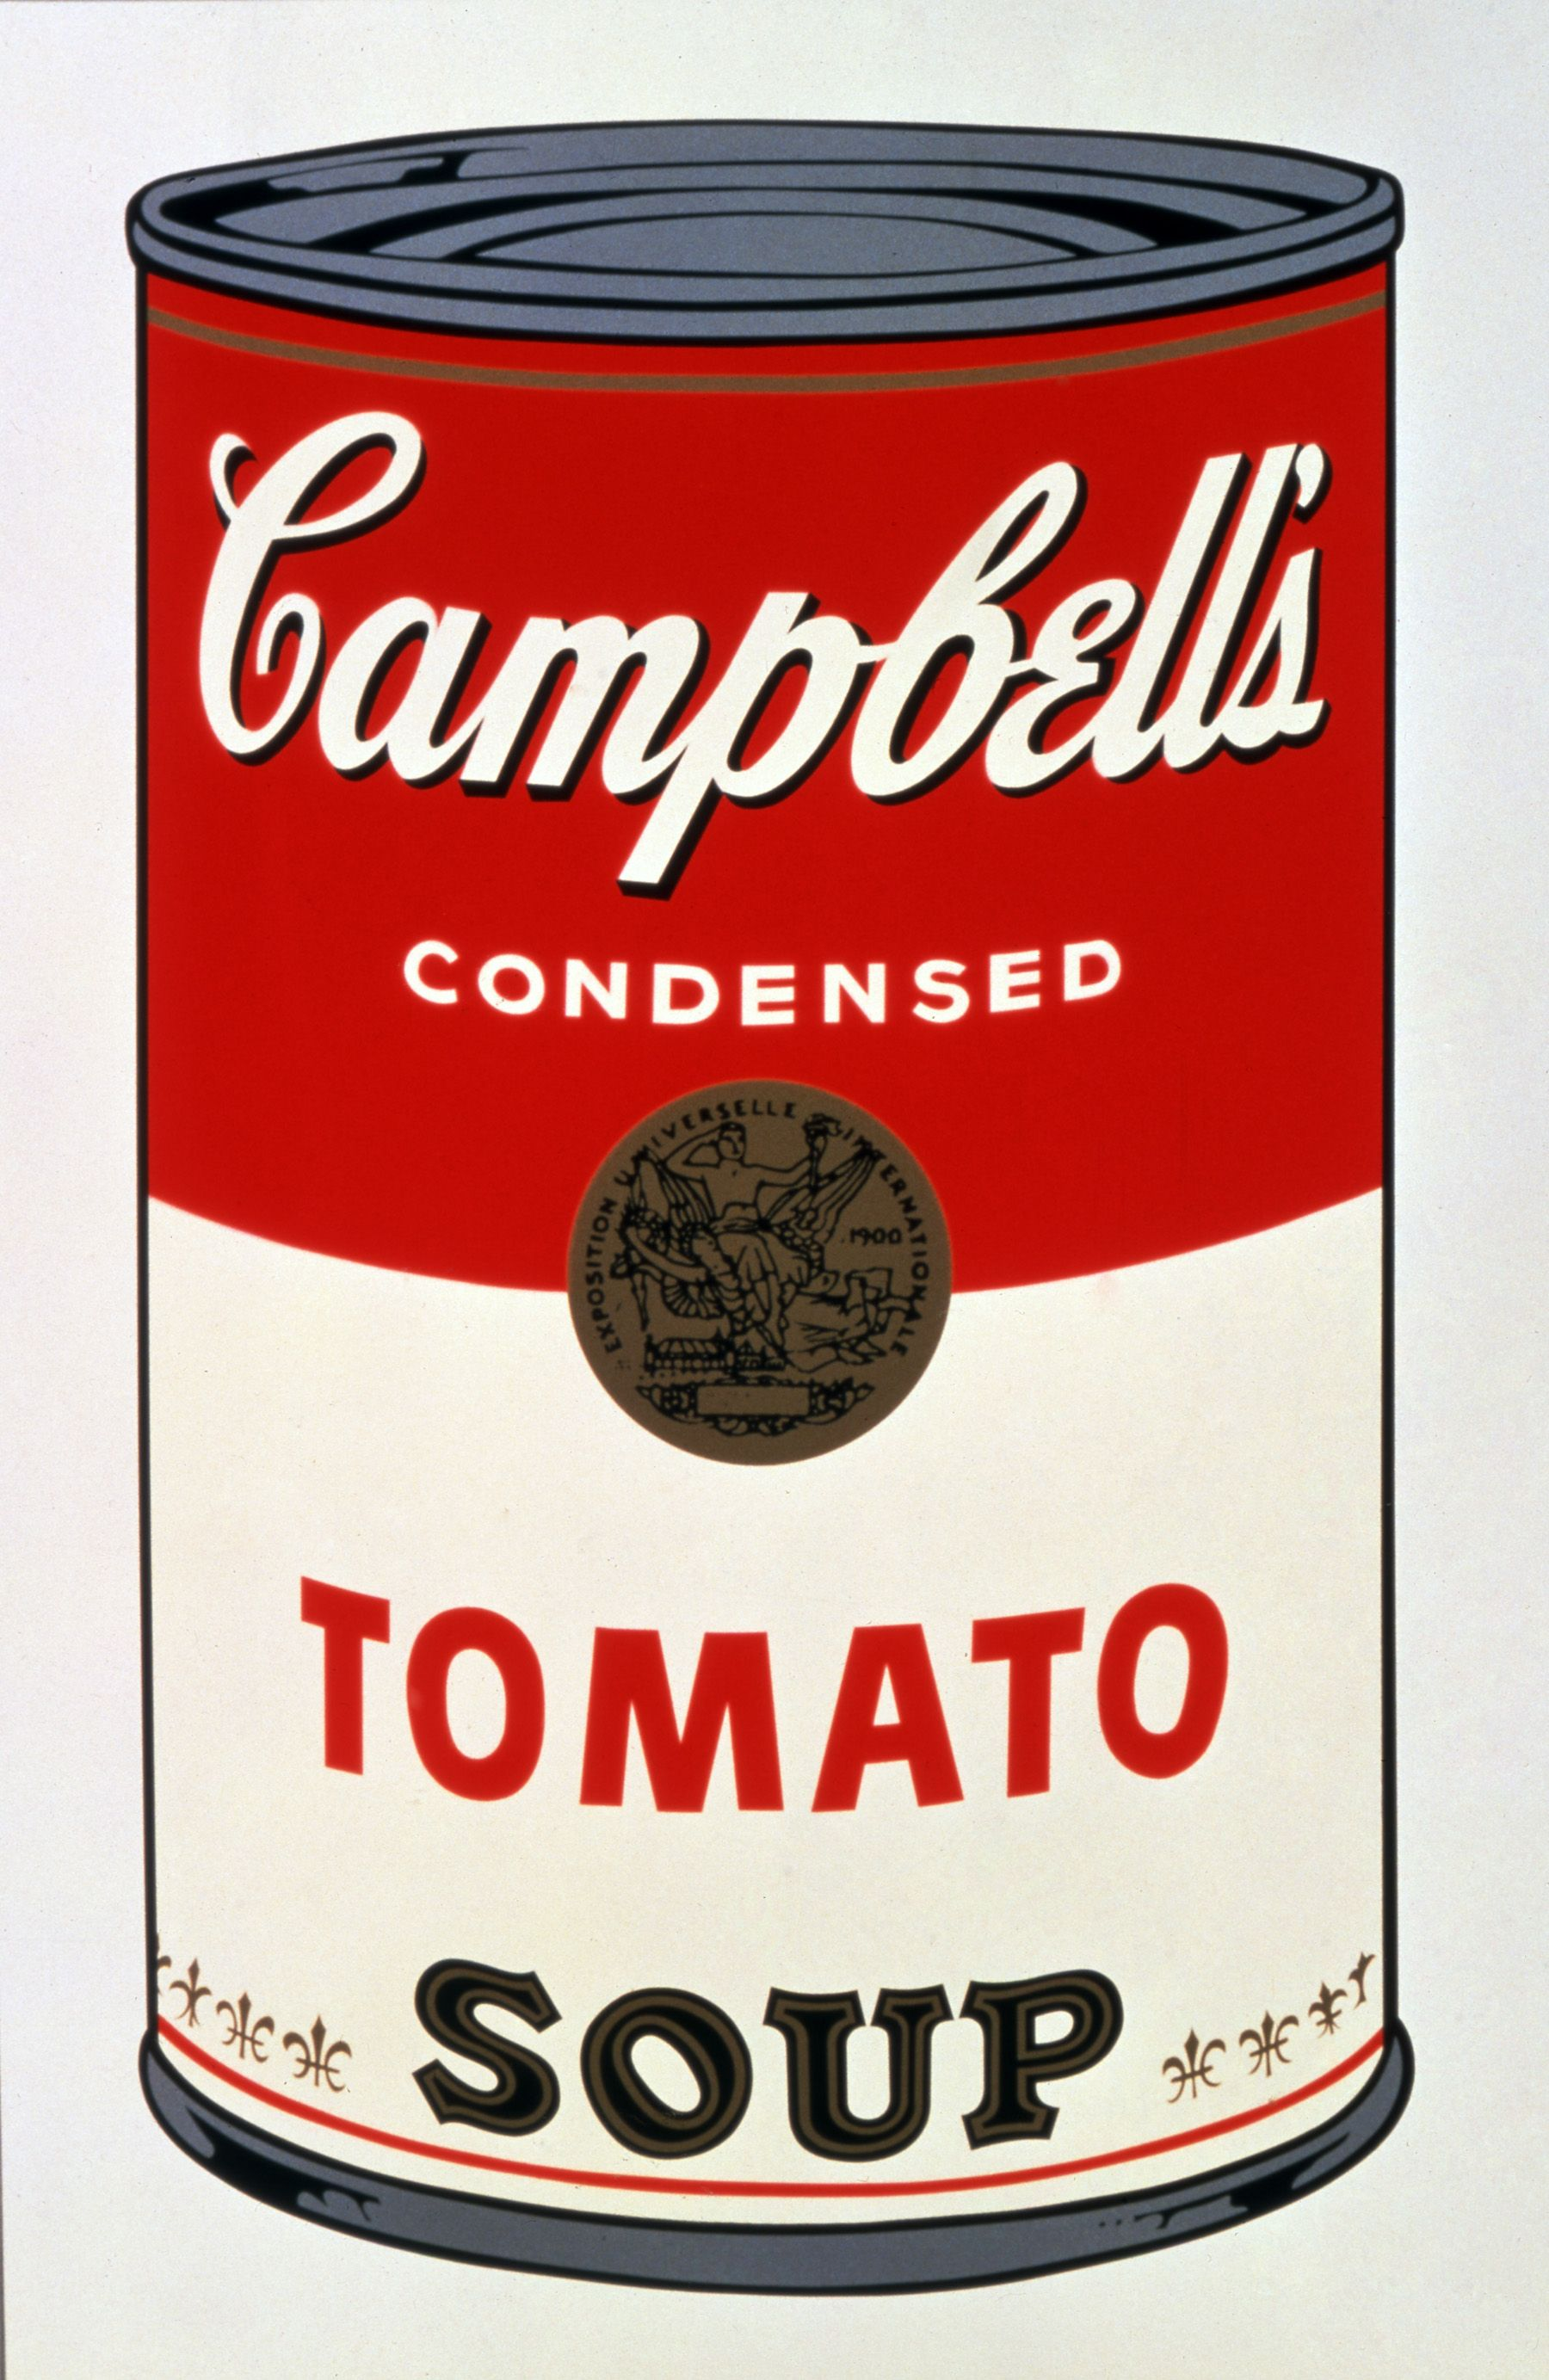 campbells tomato soup andy warhol 10 andy warhol campbells soup i tomato 1968 1800. Black Bedroom Furniture Sets. Home Design Ideas